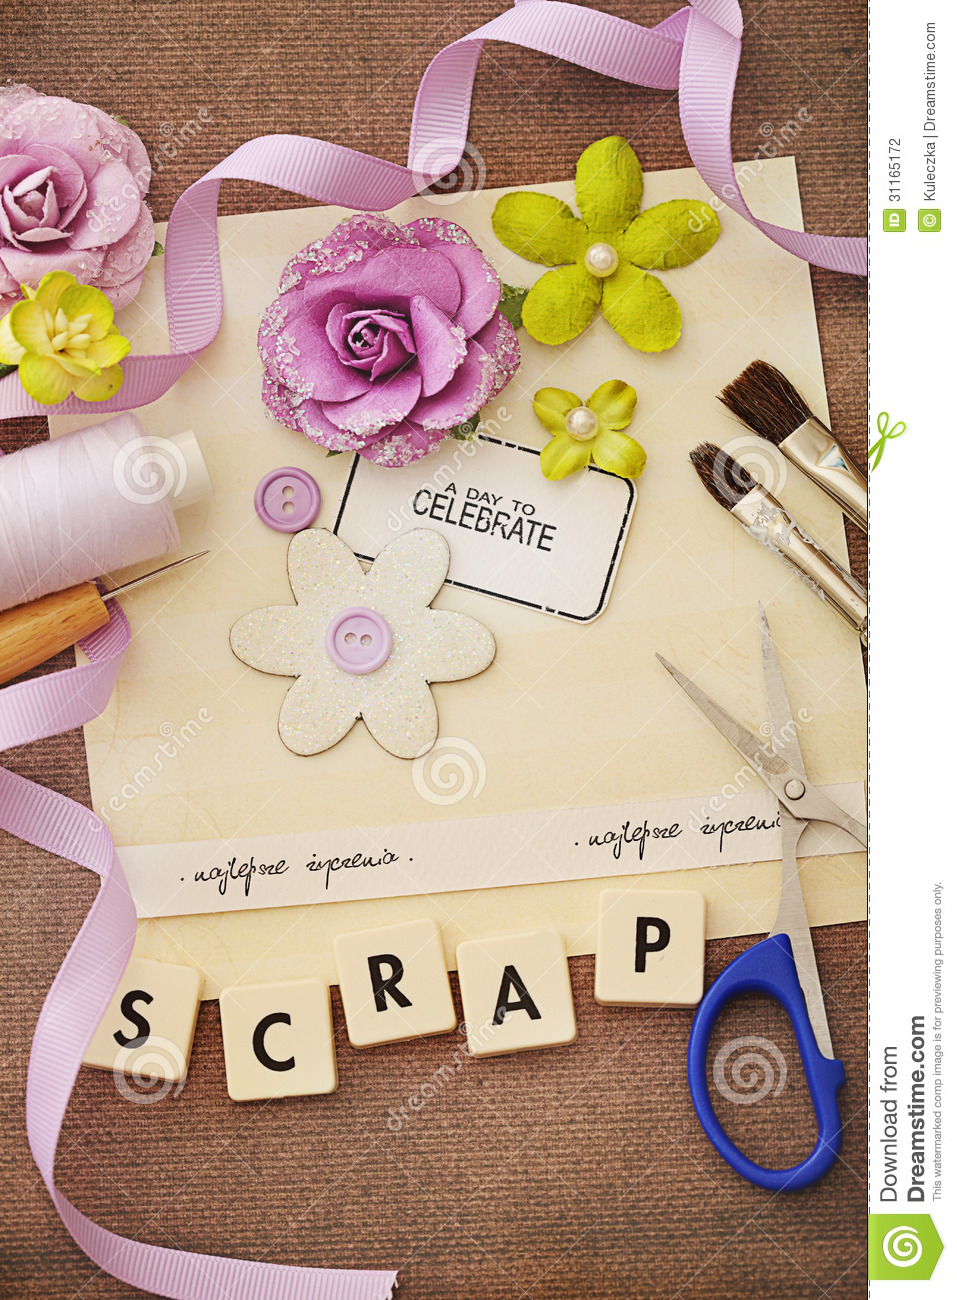 Scrapbook Materials Stock Illustration Illustration Of Creativity